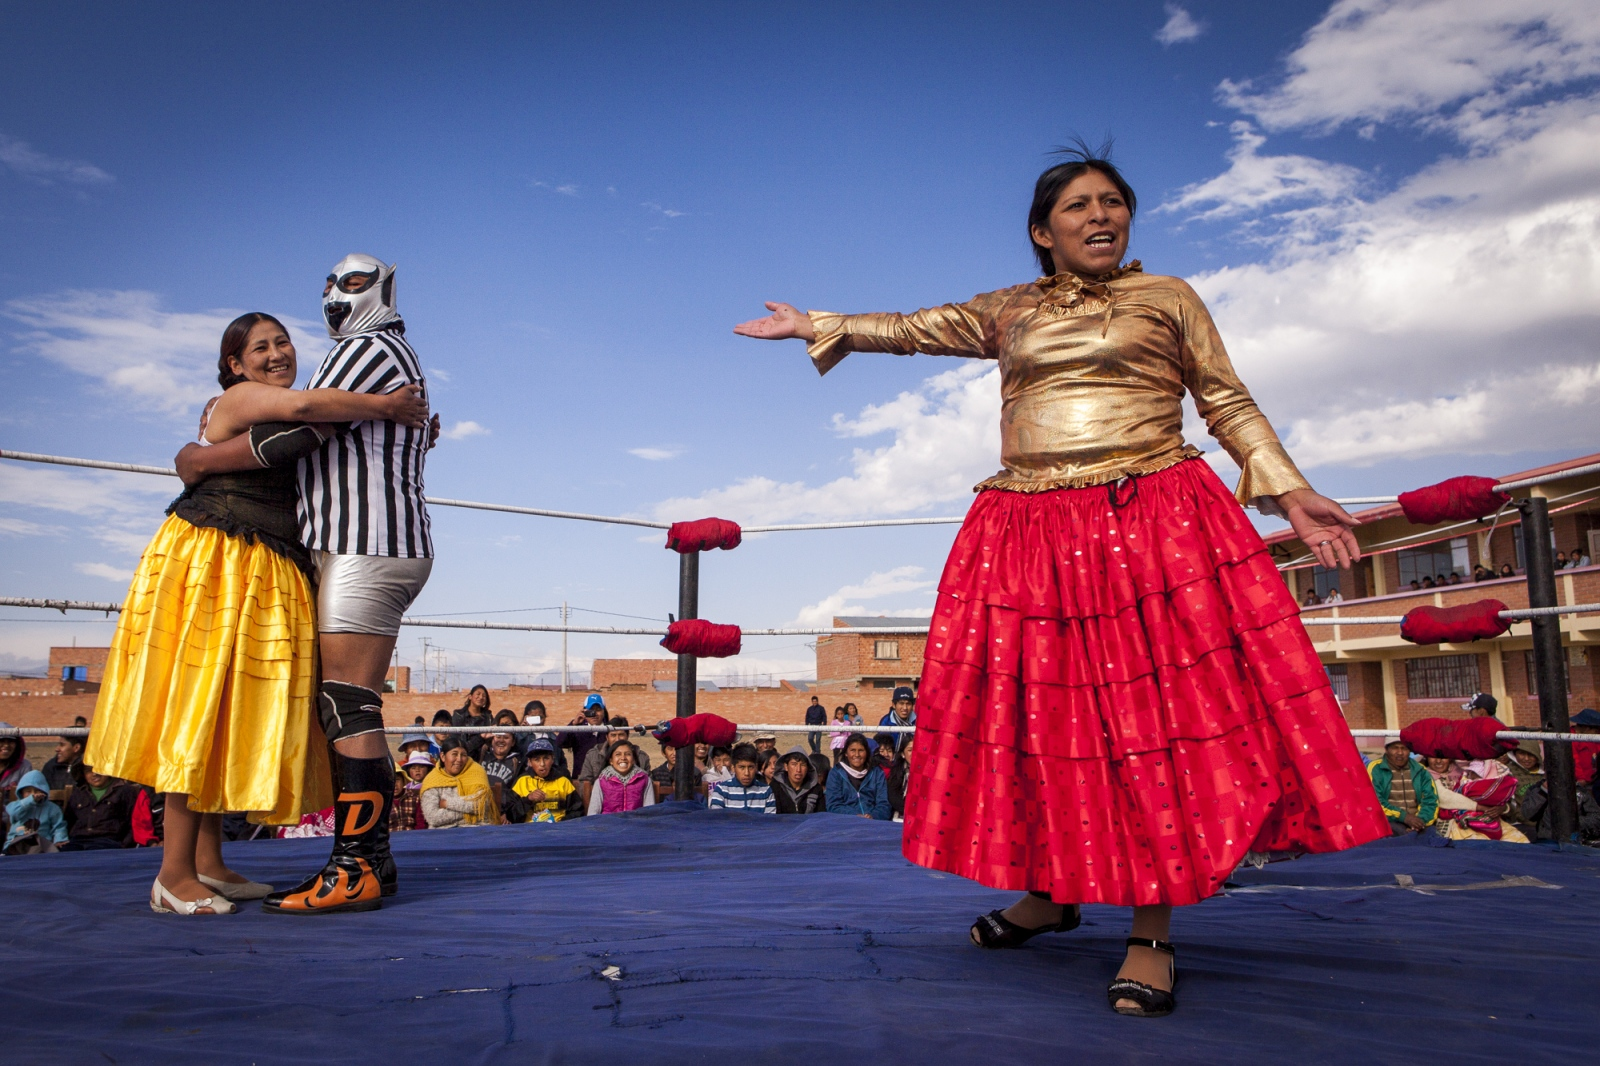 Reyna Torres complains to the public because the referee is showing a preference for her opponent during an exhibition fight in Senkata, El Alto. Cholitas fights have always a dramatic storyline that the referee is there to help the bad cholita and usually he even participate on it. But as many other stories, most of the times the good one tends to win the fight at the end.